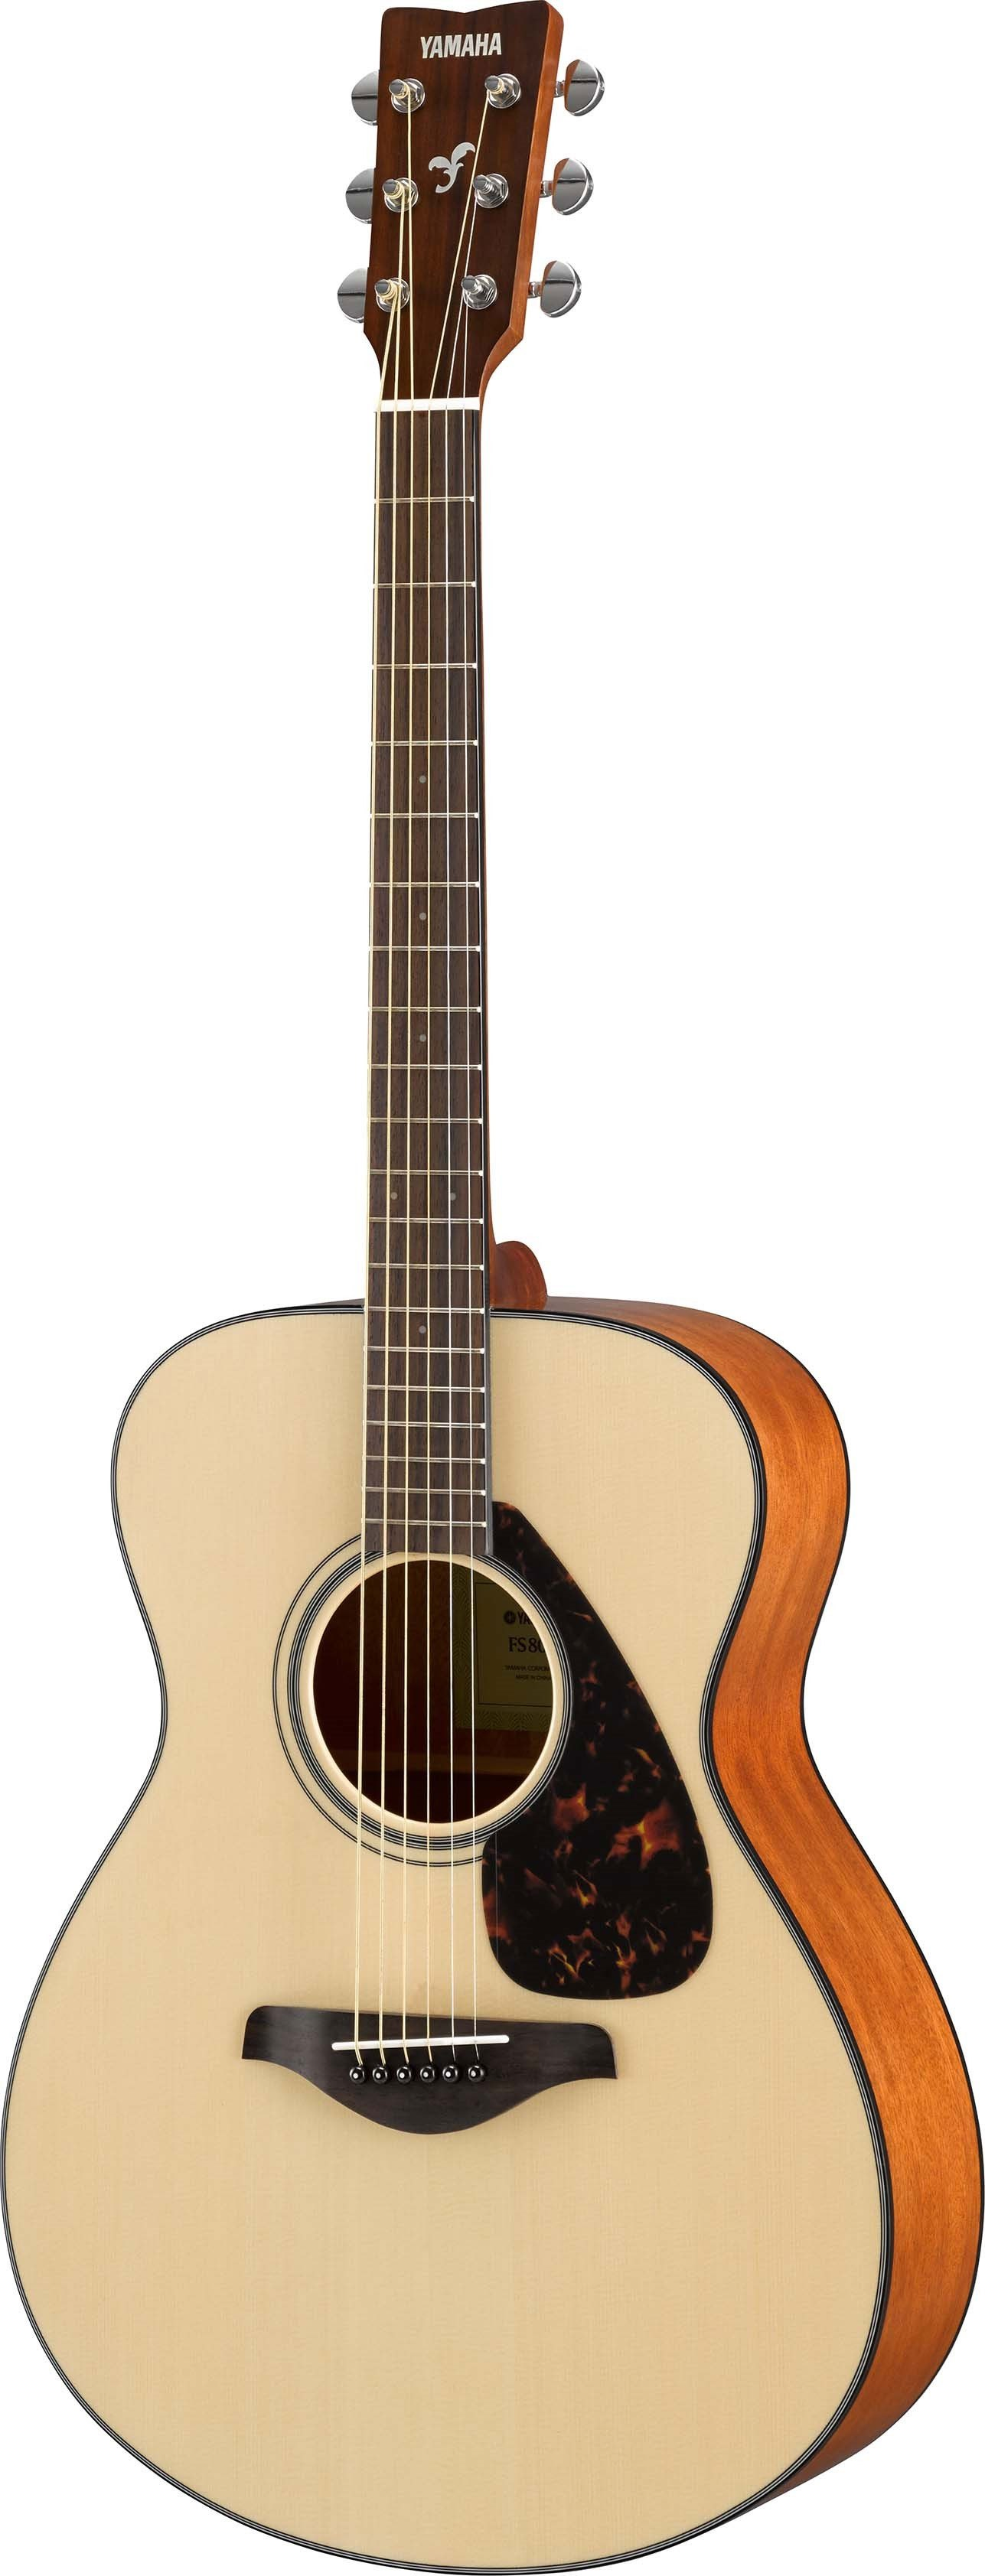 Acoustic guitar with light wood finish.